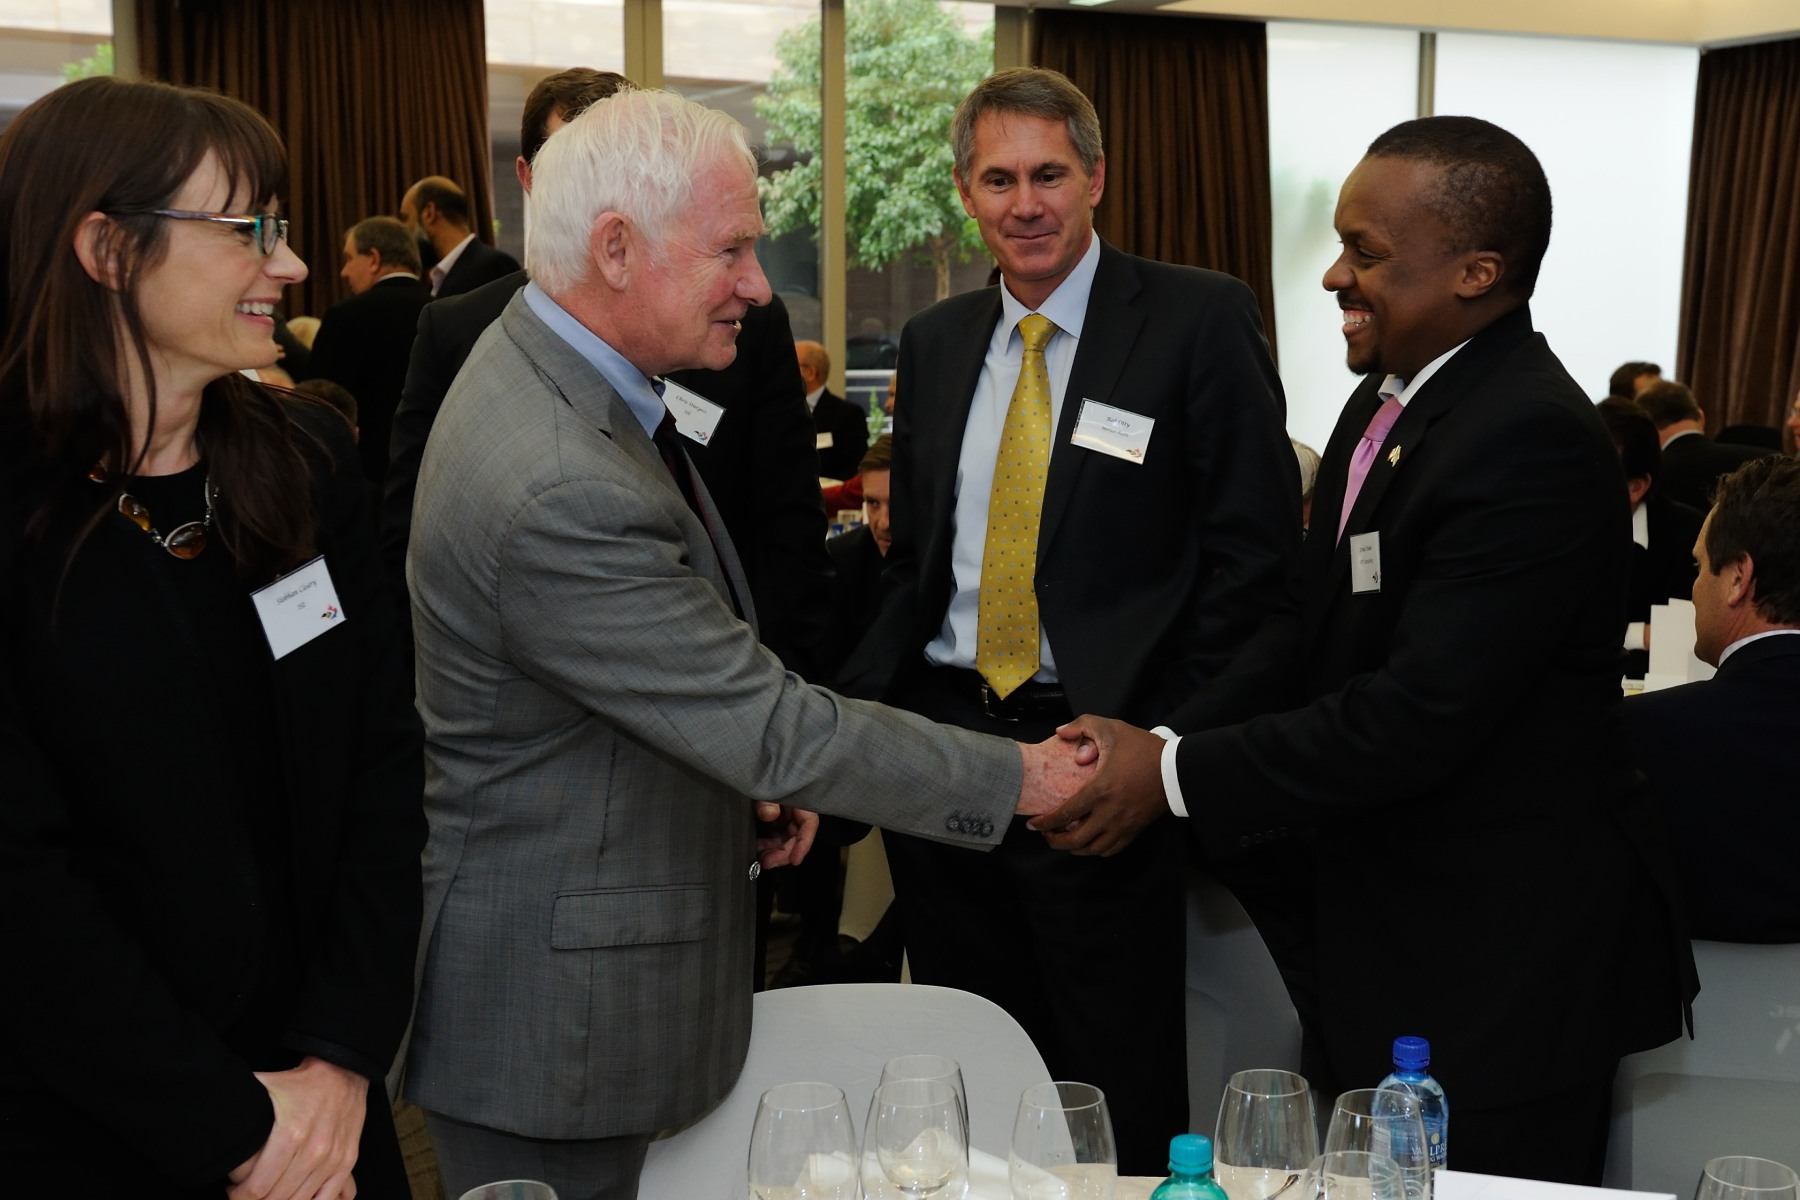 His Excellency talked with the Canada—South Africa Business Networking Luncheon participants.